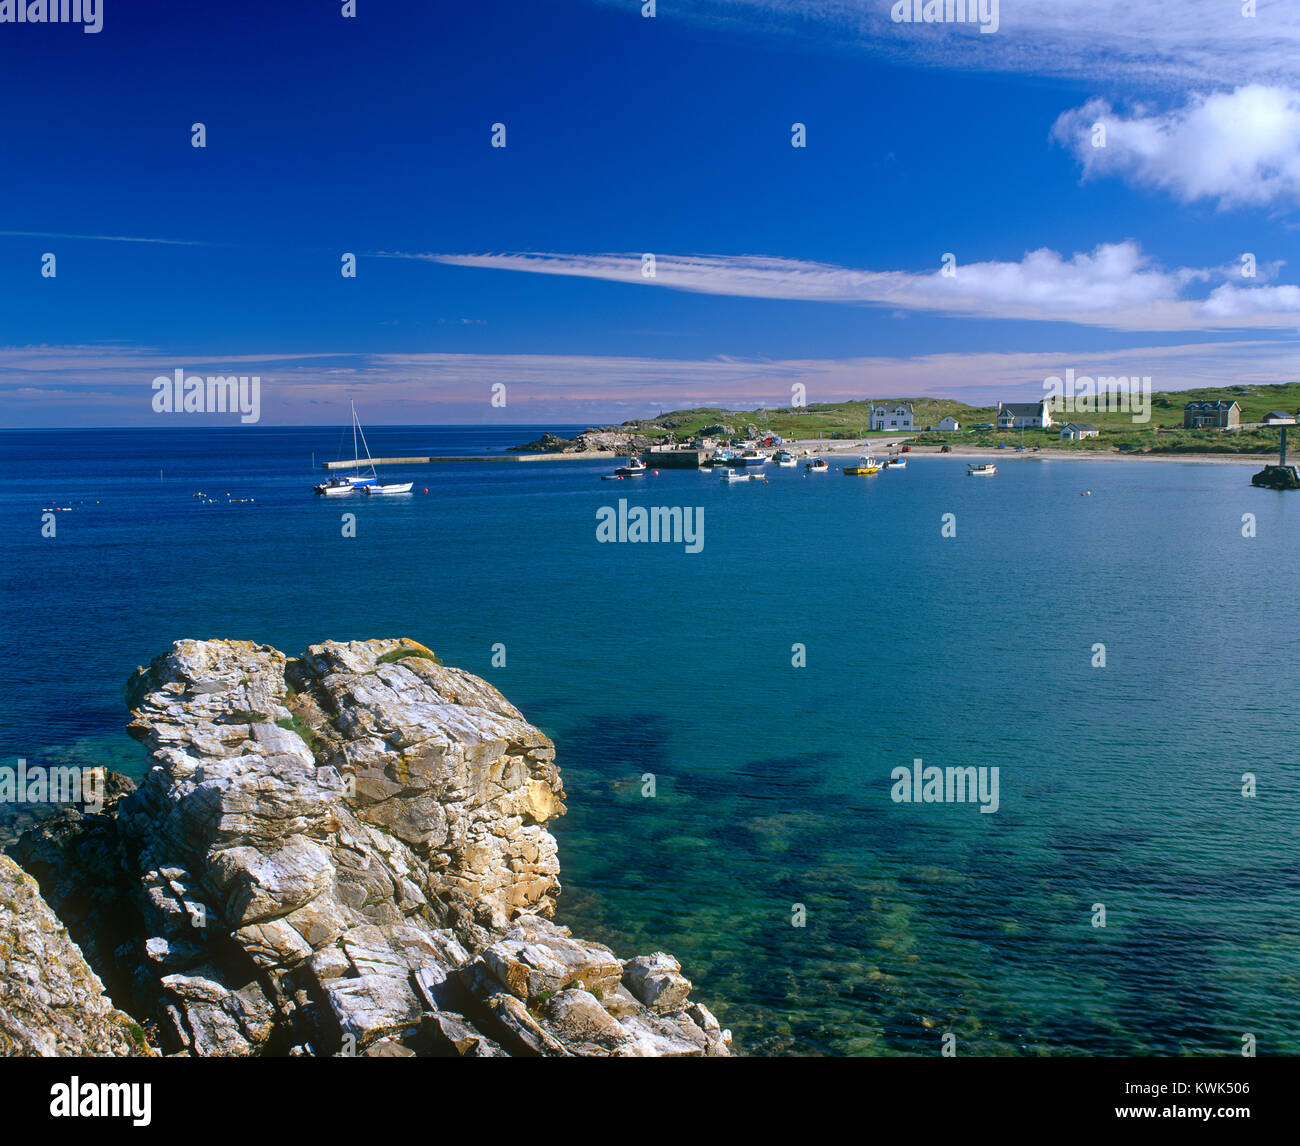 Port na Blagh bay and harbour, County Donegal, Ireland - Stock Image